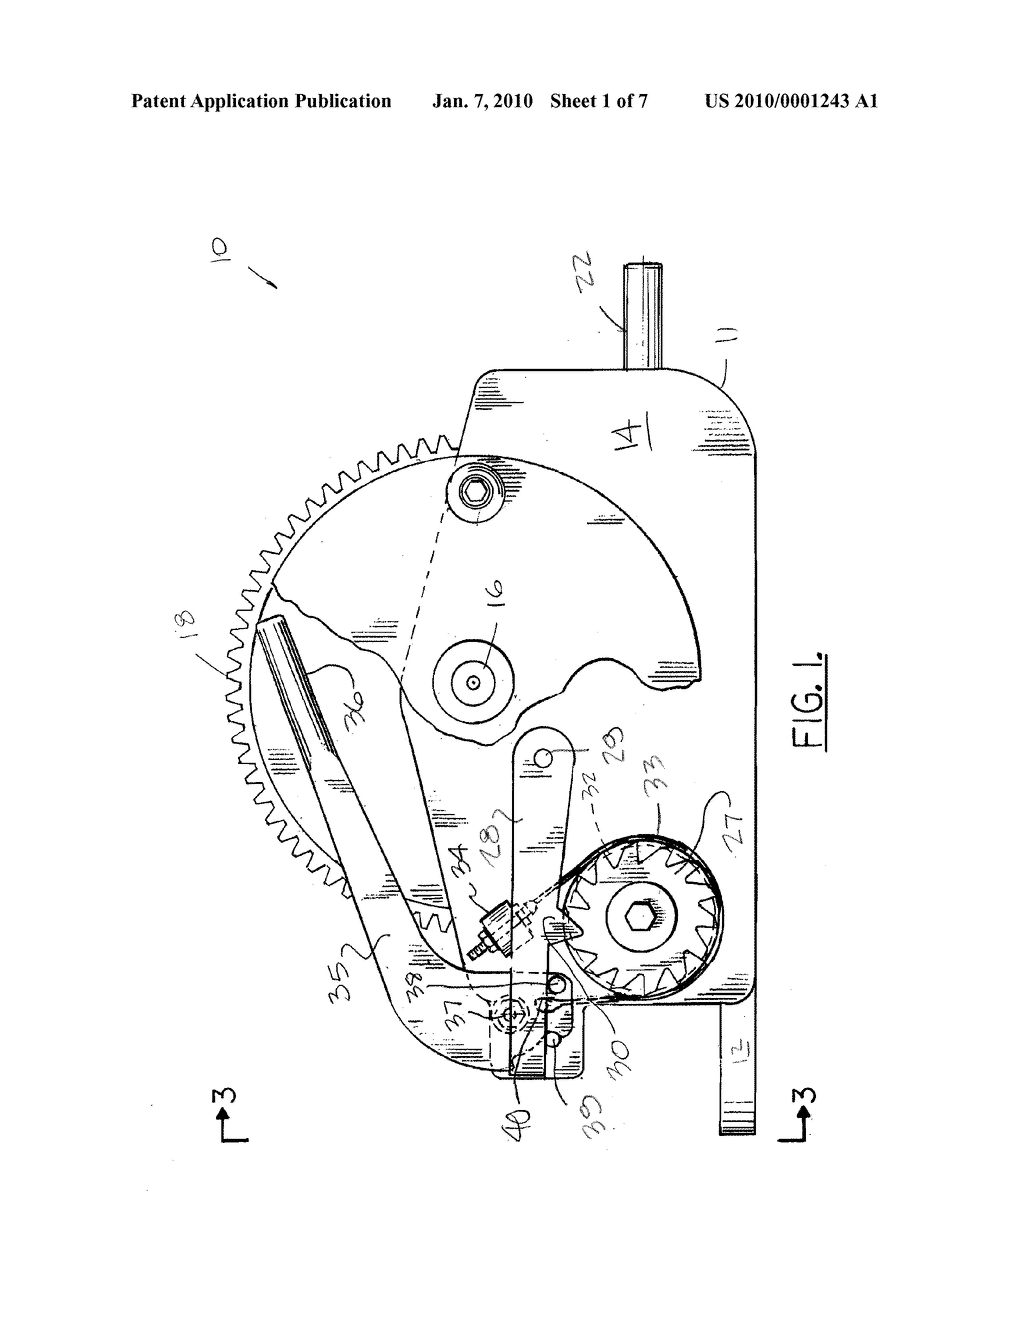 Winch Brake Diagram Reinvent Your Wiring Schematic Handle Operated Release Mechanism For A Cable Drum Rh Patentsencyclopedia Com Warn